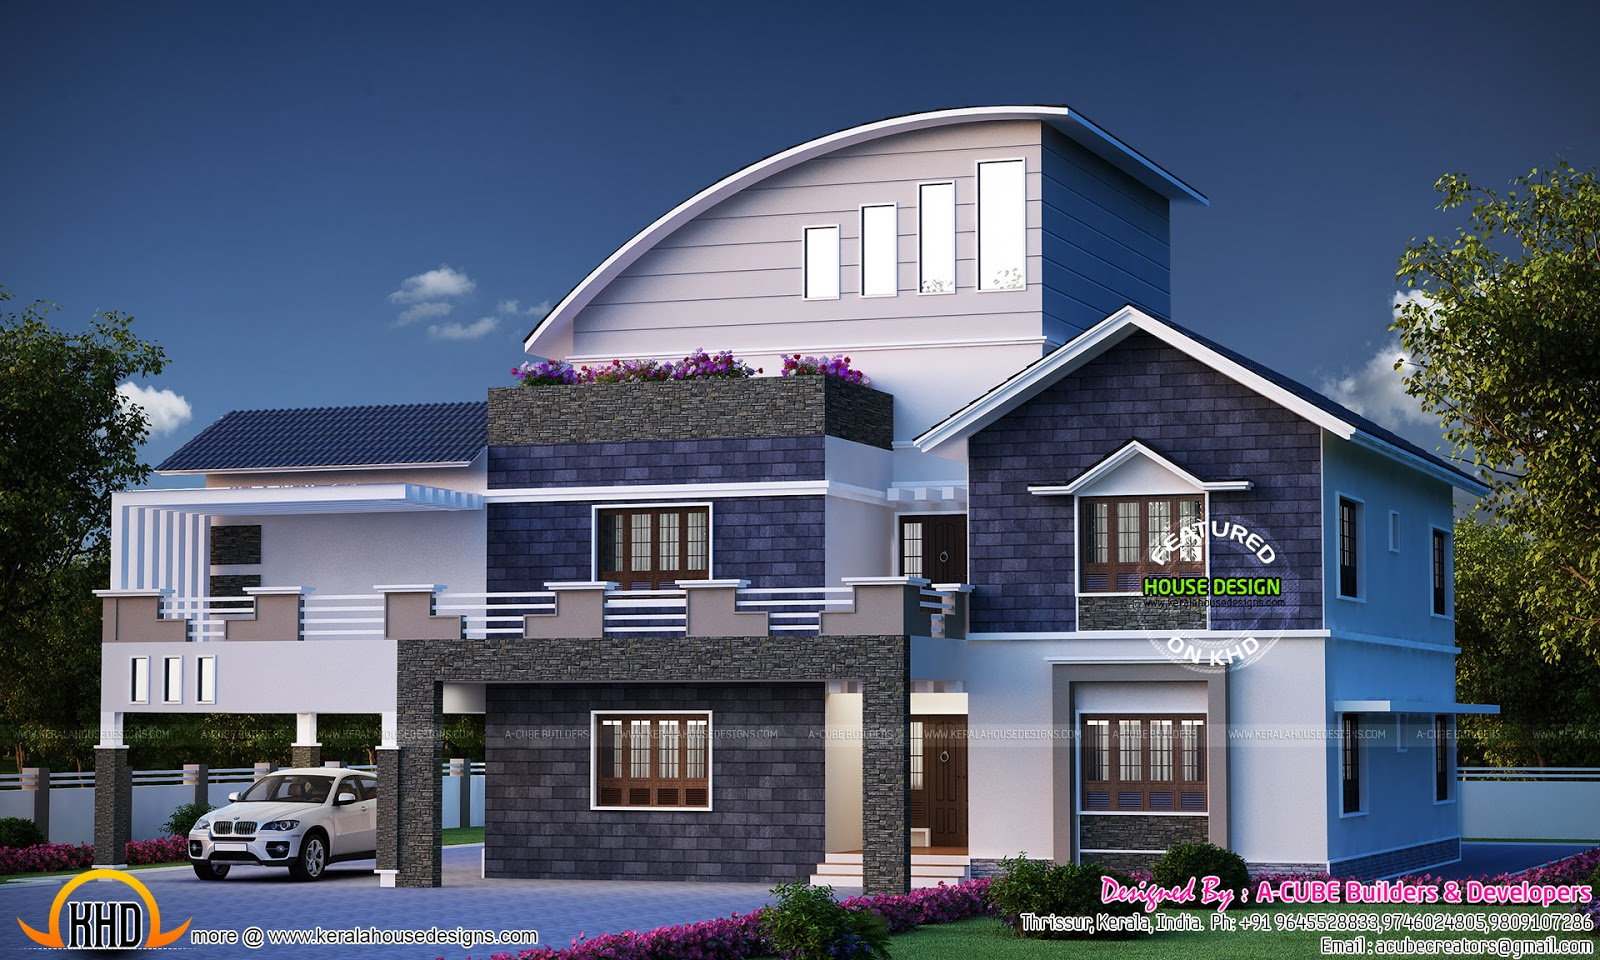 stylish-mix-roof-house.jpg